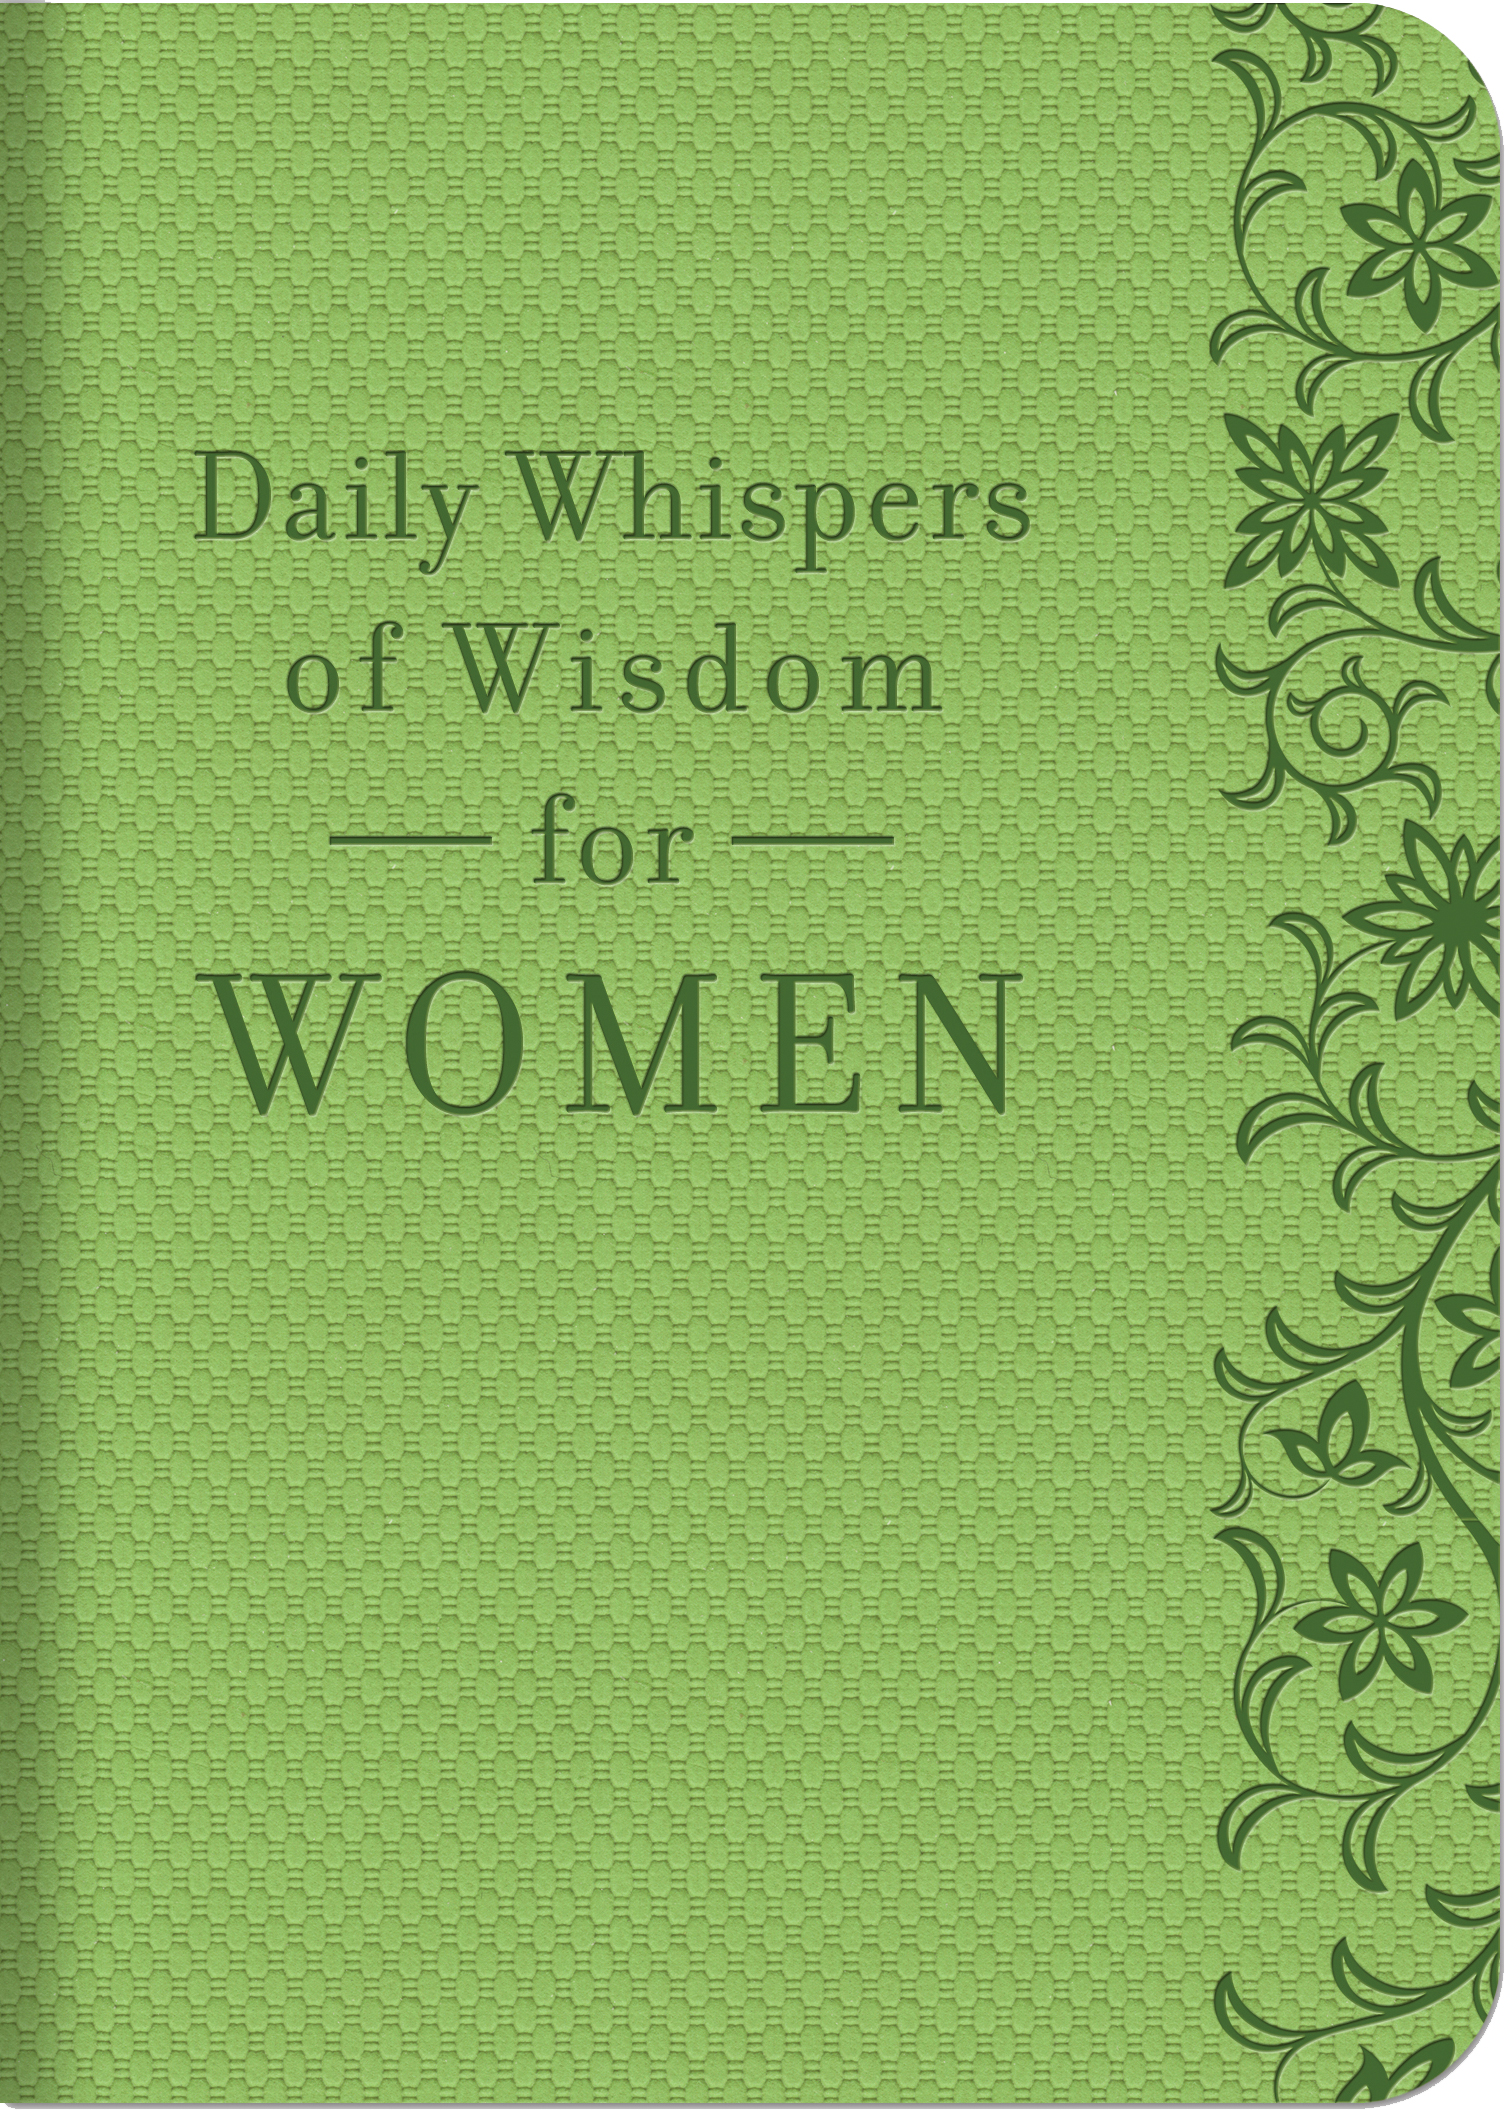 Daily Whispers of Wisdom for Women